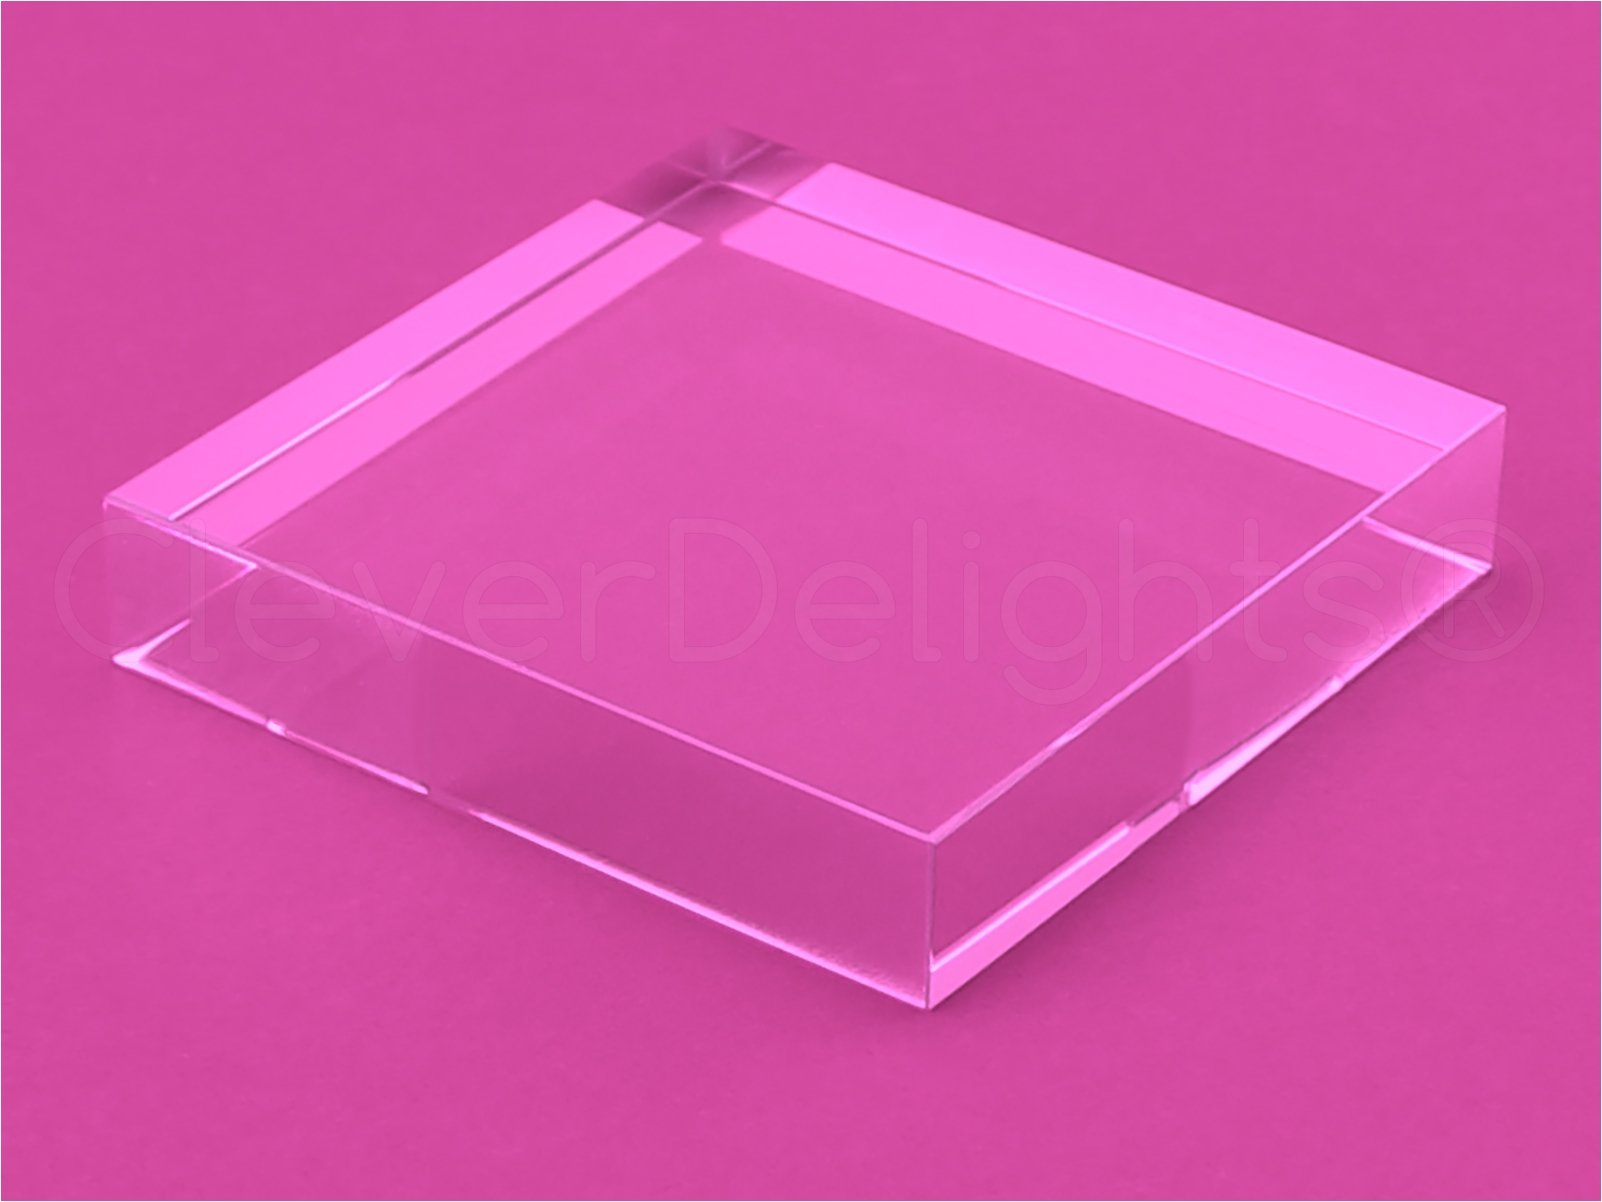 10 Pack - CleverDelights 3 Inch Square Glass Tiles - Clear Solid Glass Tiles - 3'' x 3'' x 5/8'' Thick by CleverDelights (Image #3)